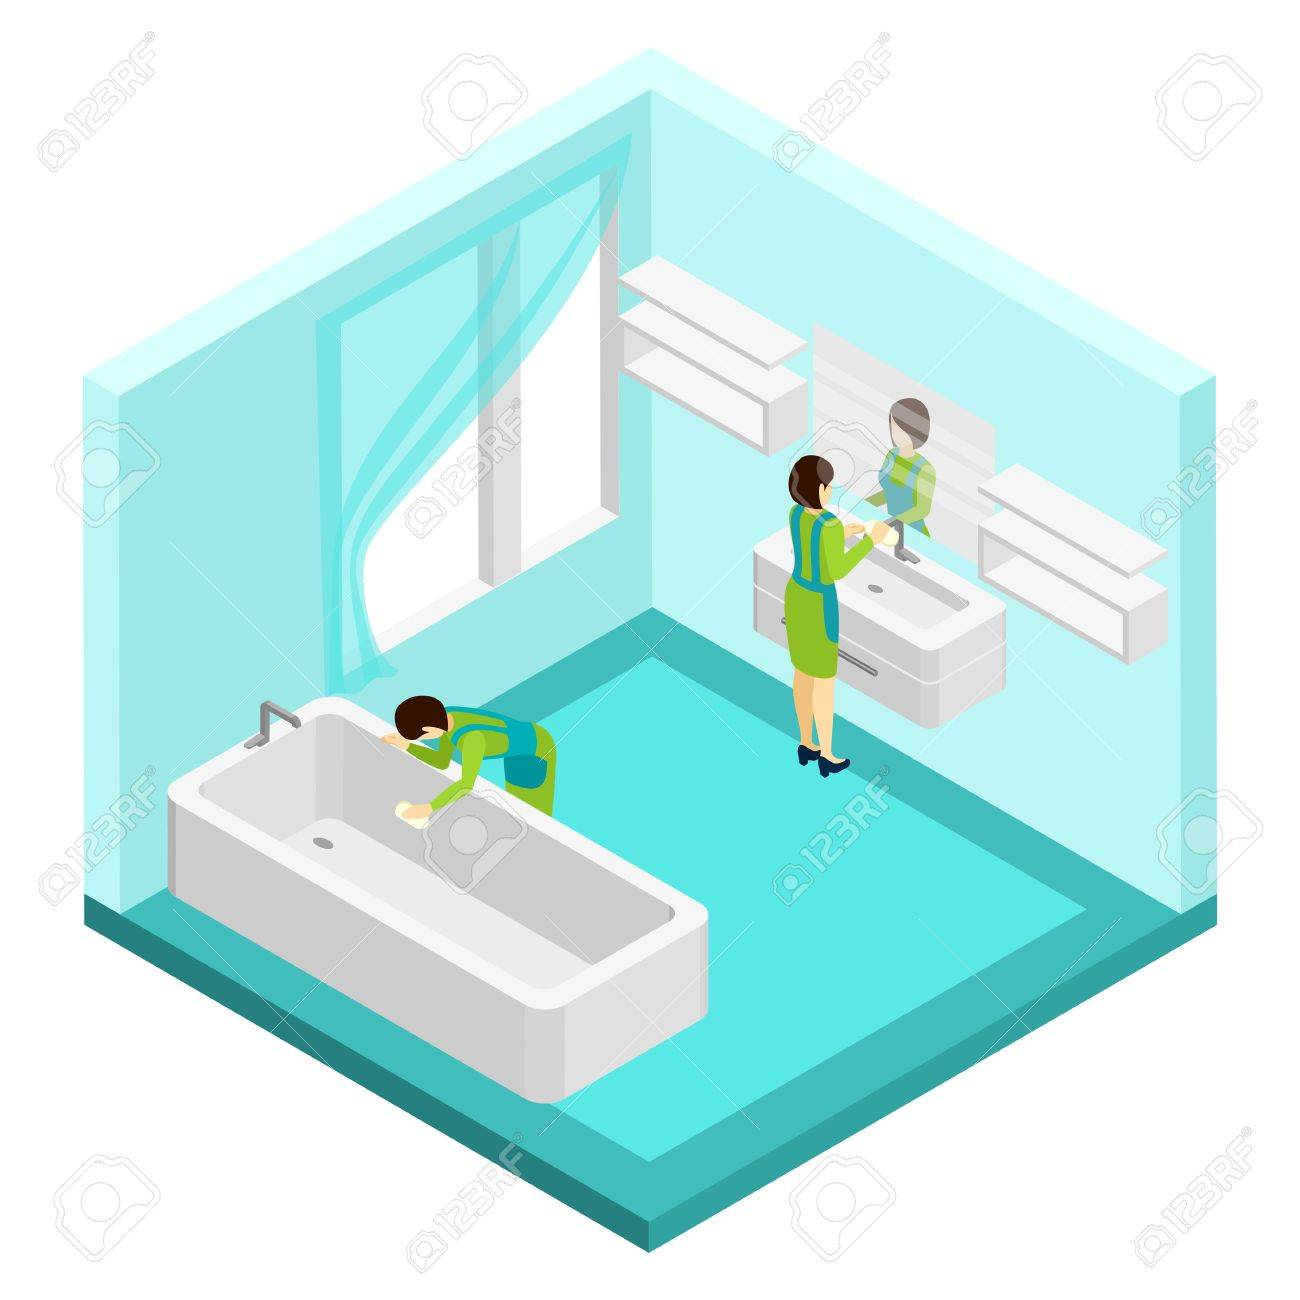 Bathroom mirror clip art - People Cleaning Bathroom With Mirror Window And Bath Isometric Vector Illustration Stock Vector 52697939